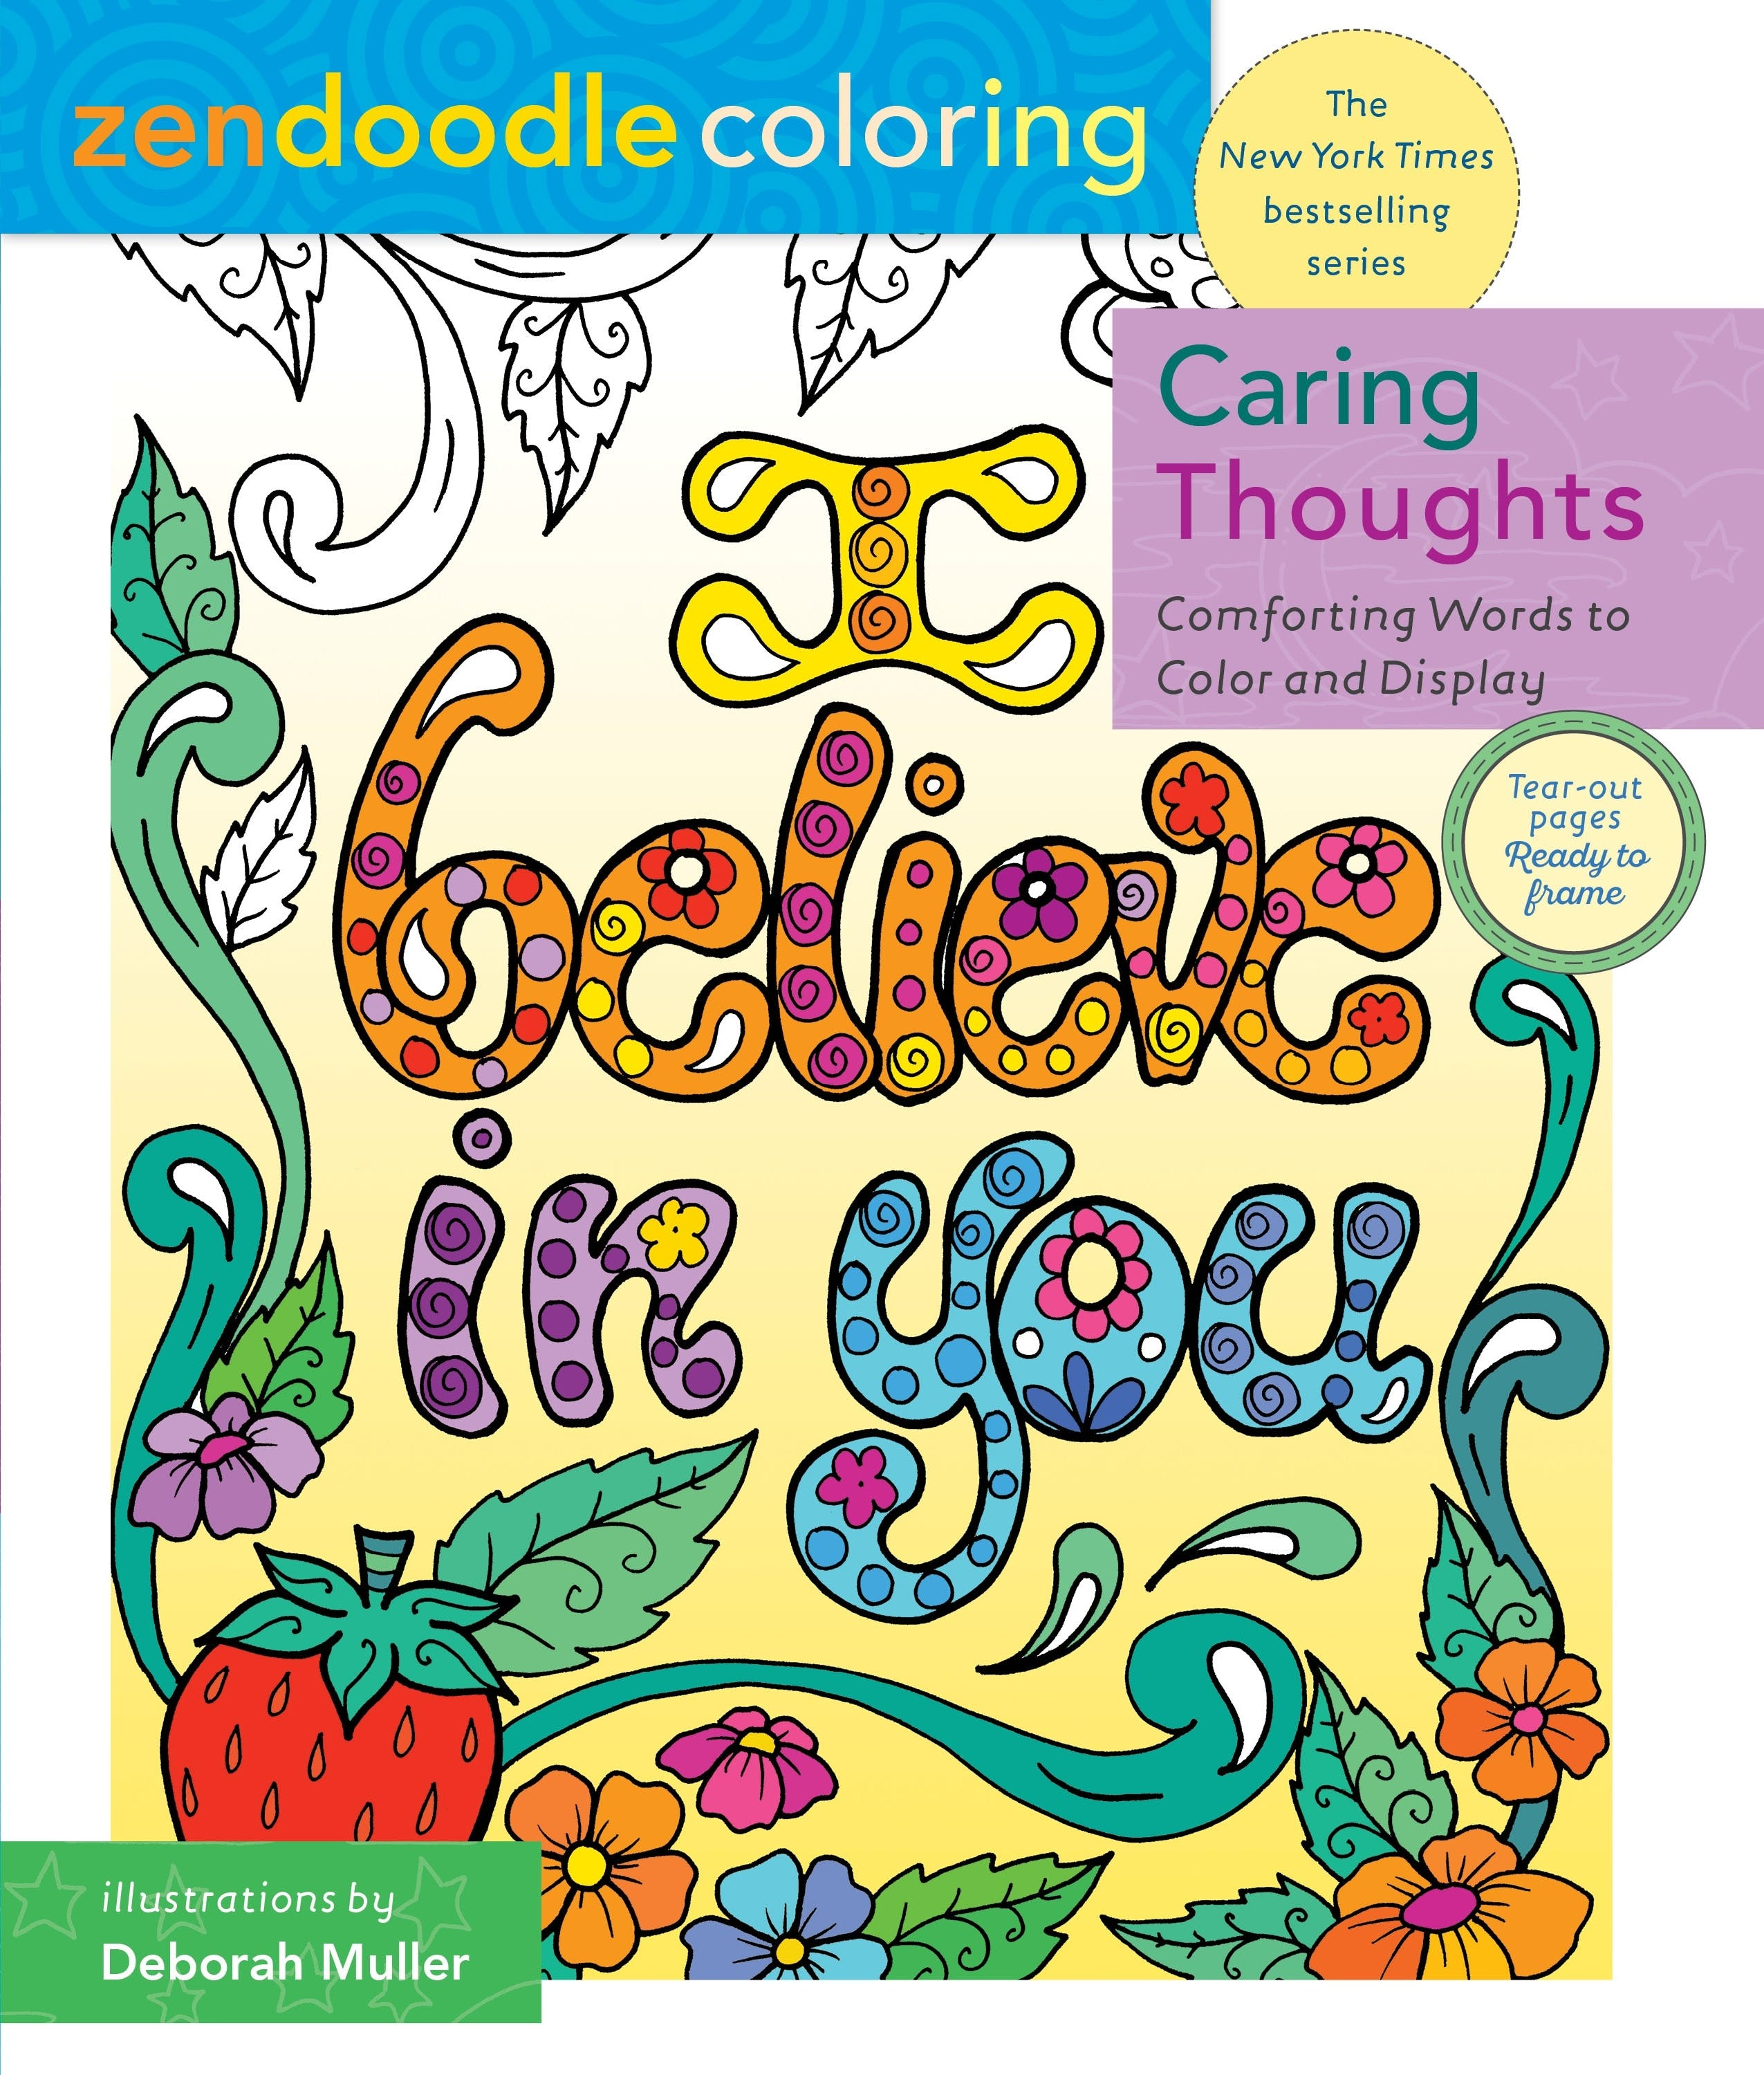 Image of Zendoodle Coloring: Caring Thoughts